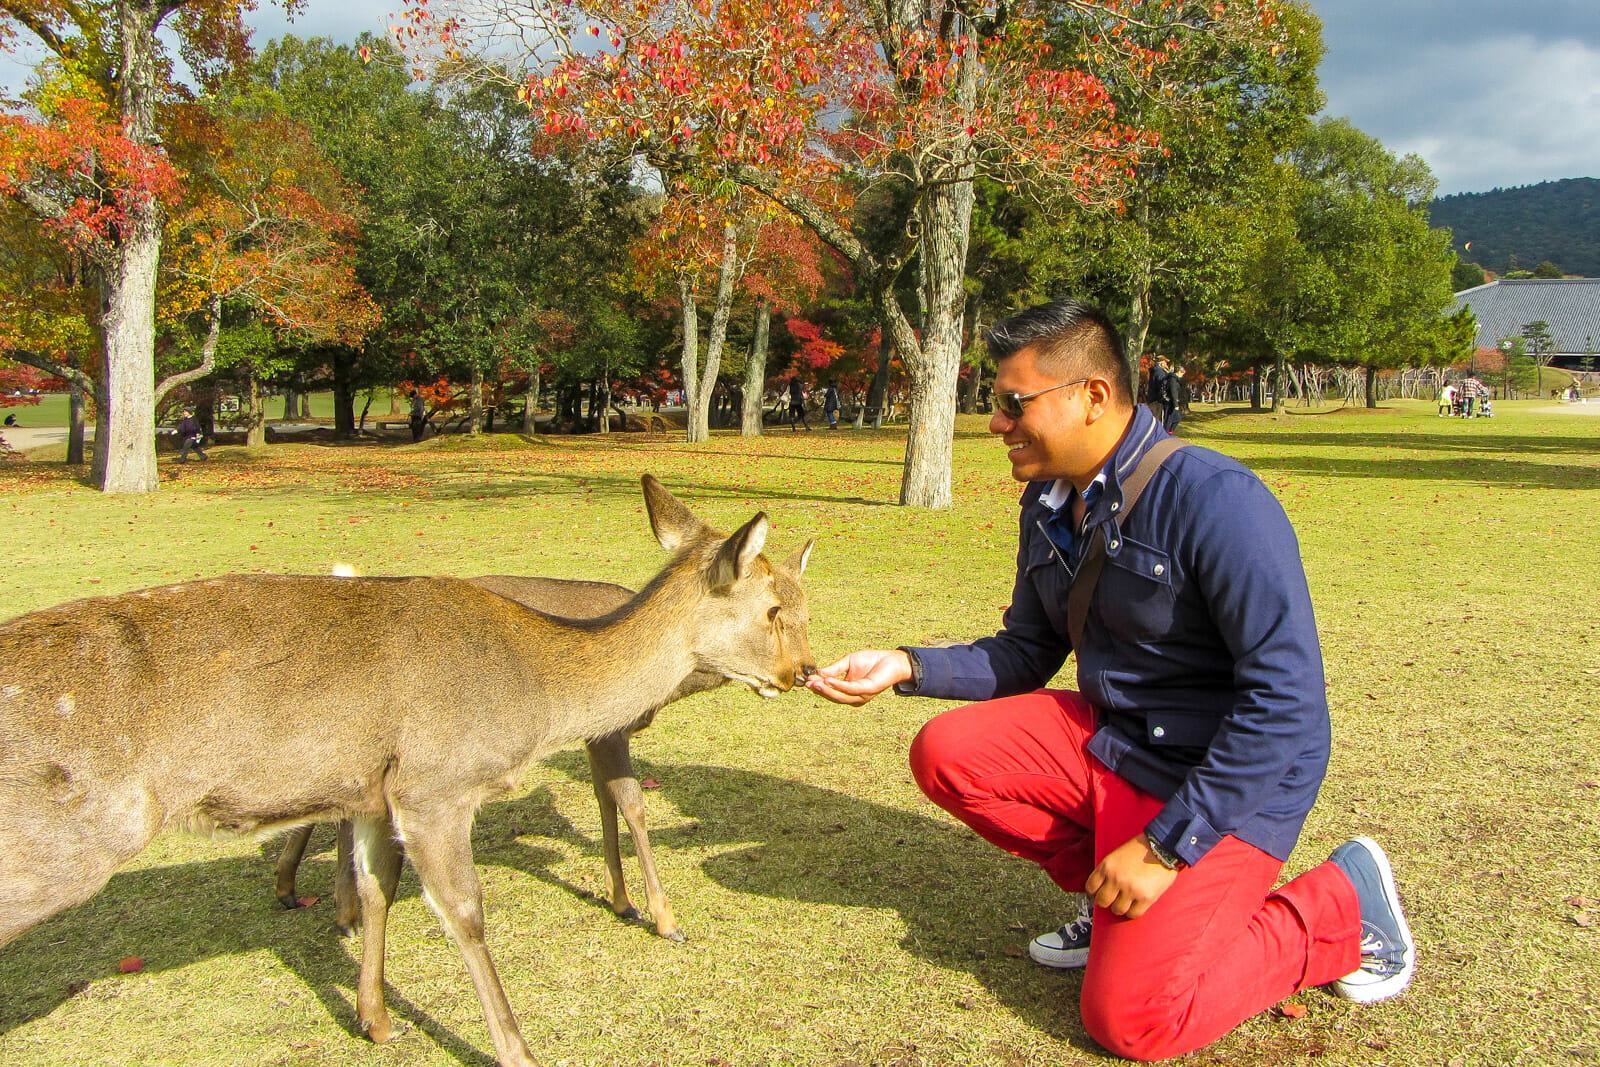 Feeding the deers at Nara, Japan